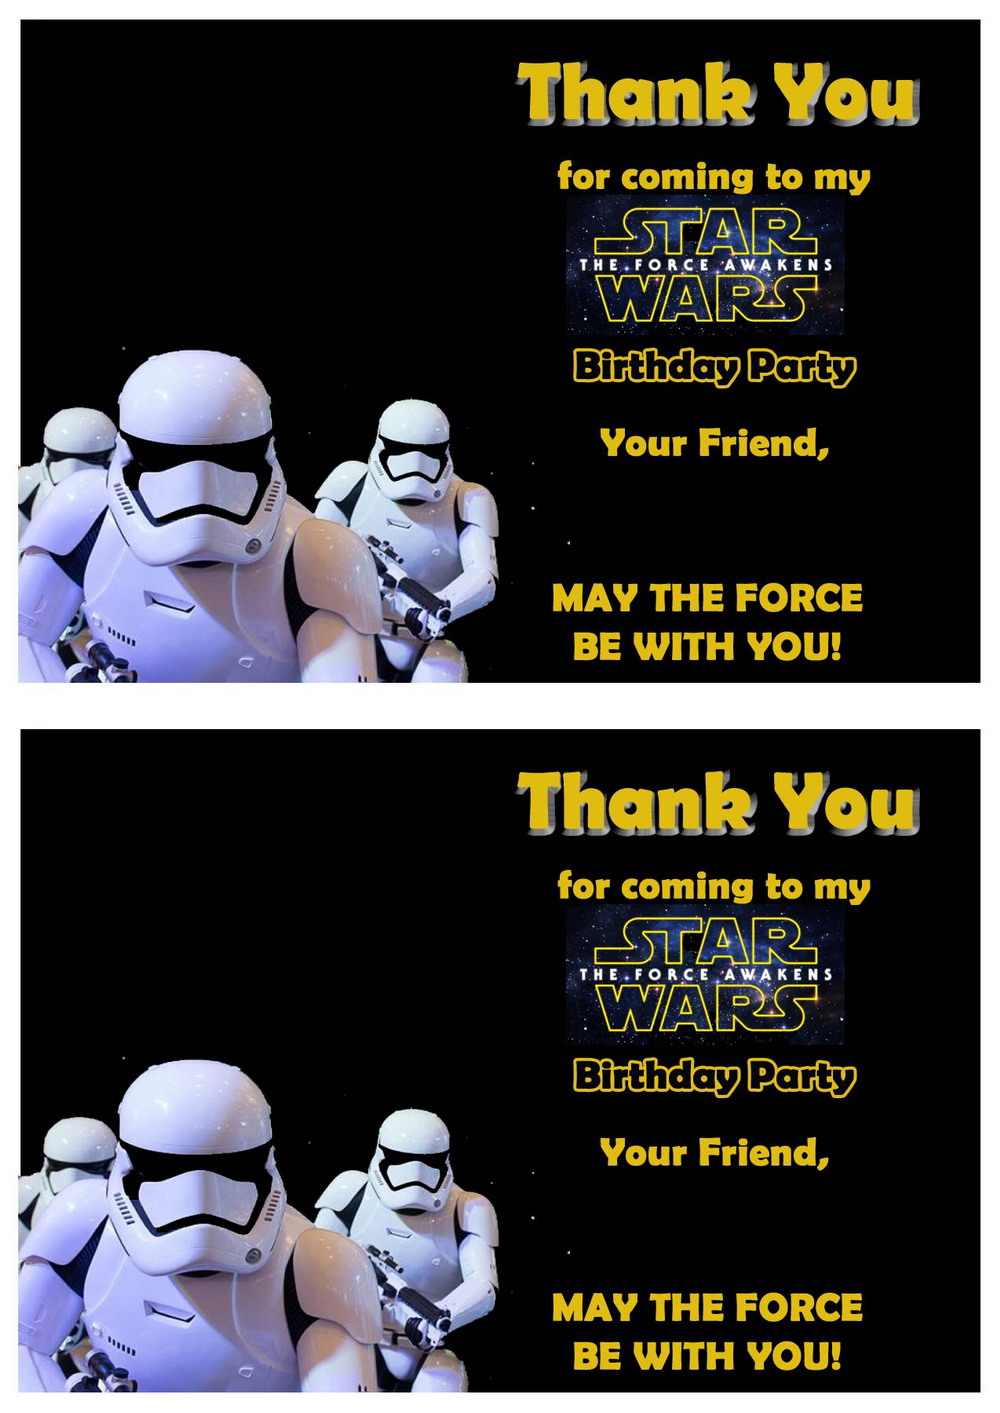 star wars thank you cards